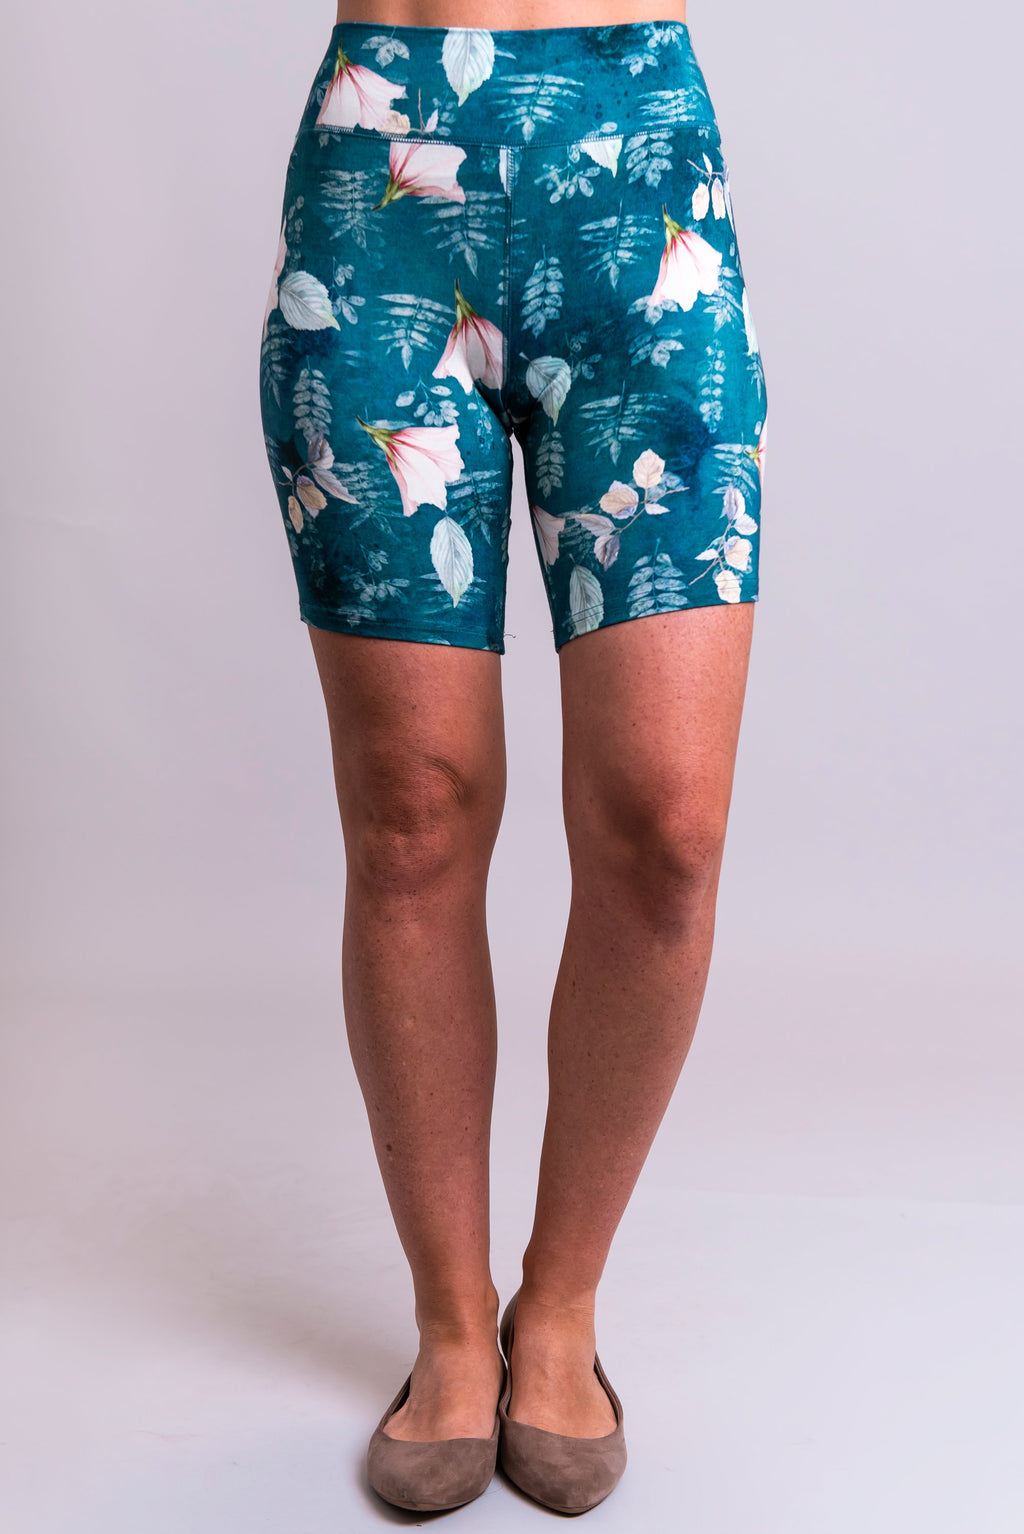 Hallie Undershorts, Water Lily, Bamboo